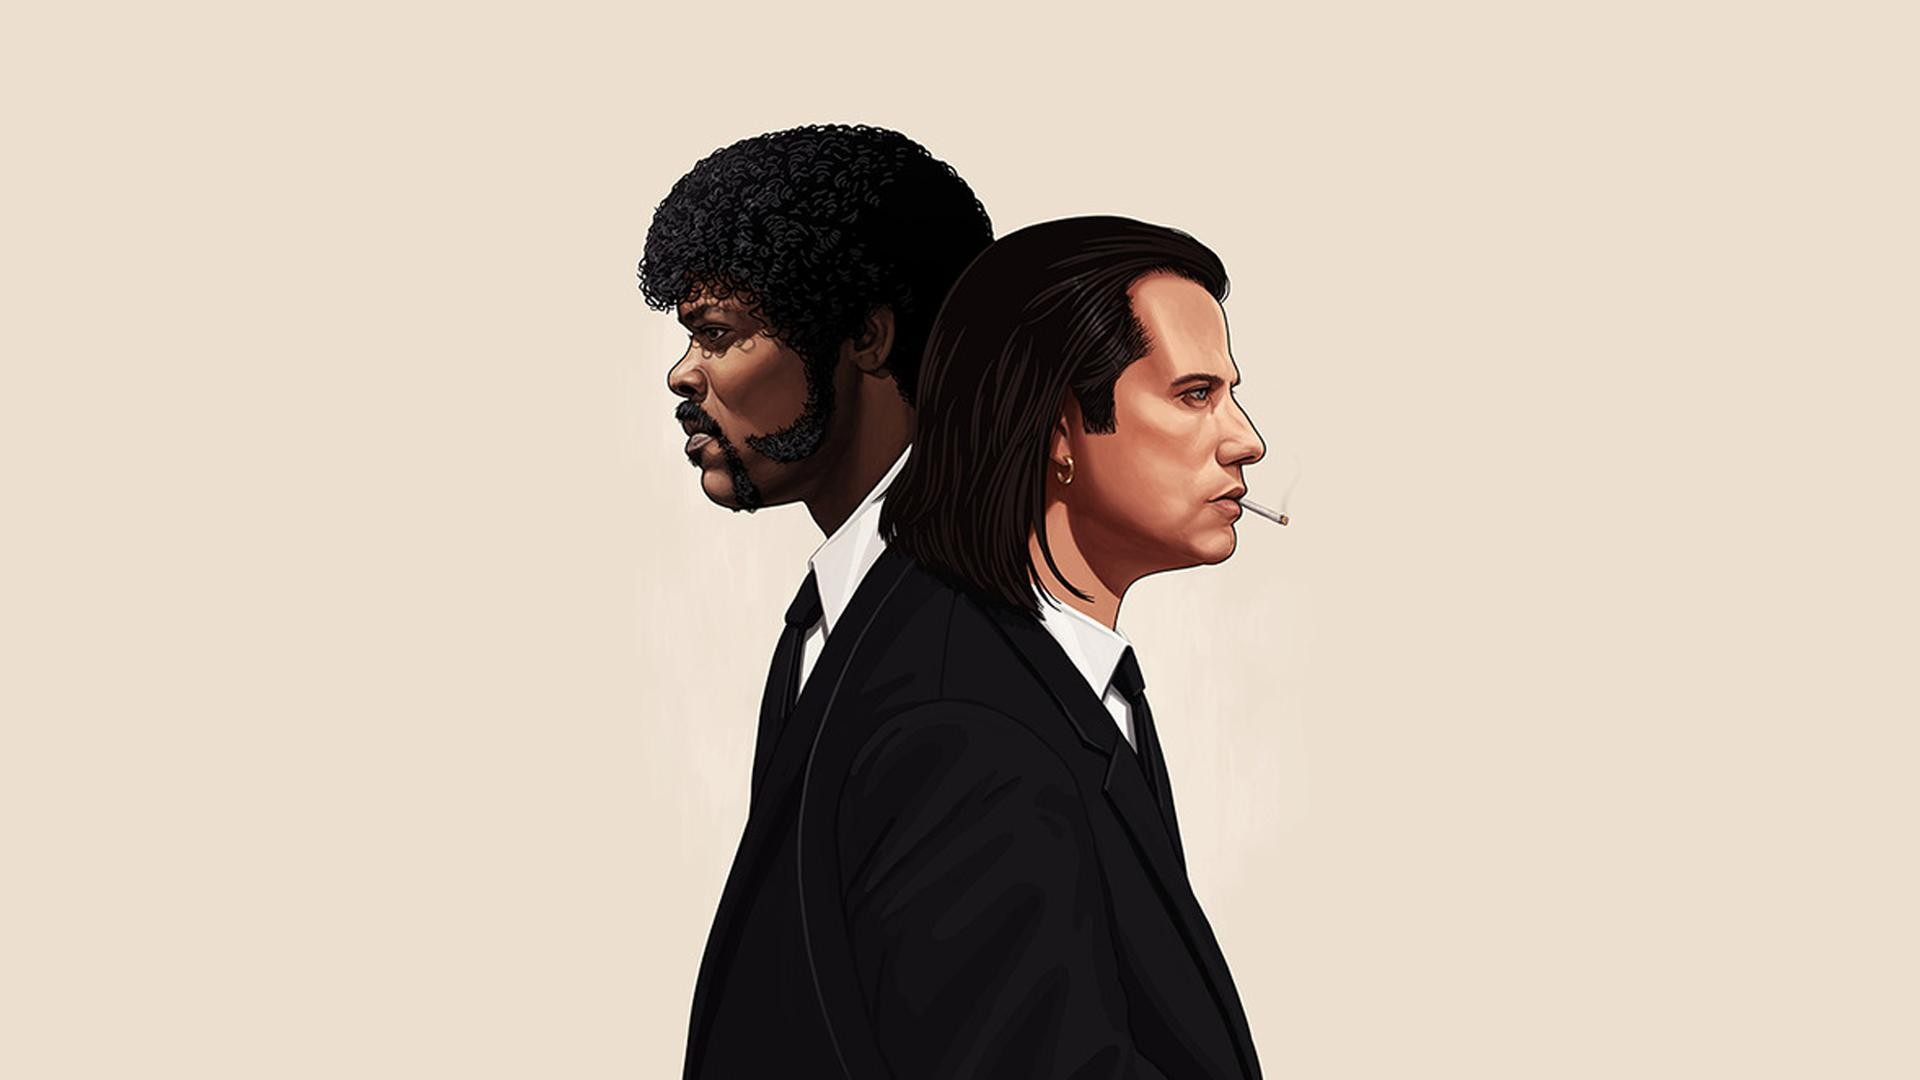 Pulp Fiction wallpaper ·① Download free full HD wallpapers ...